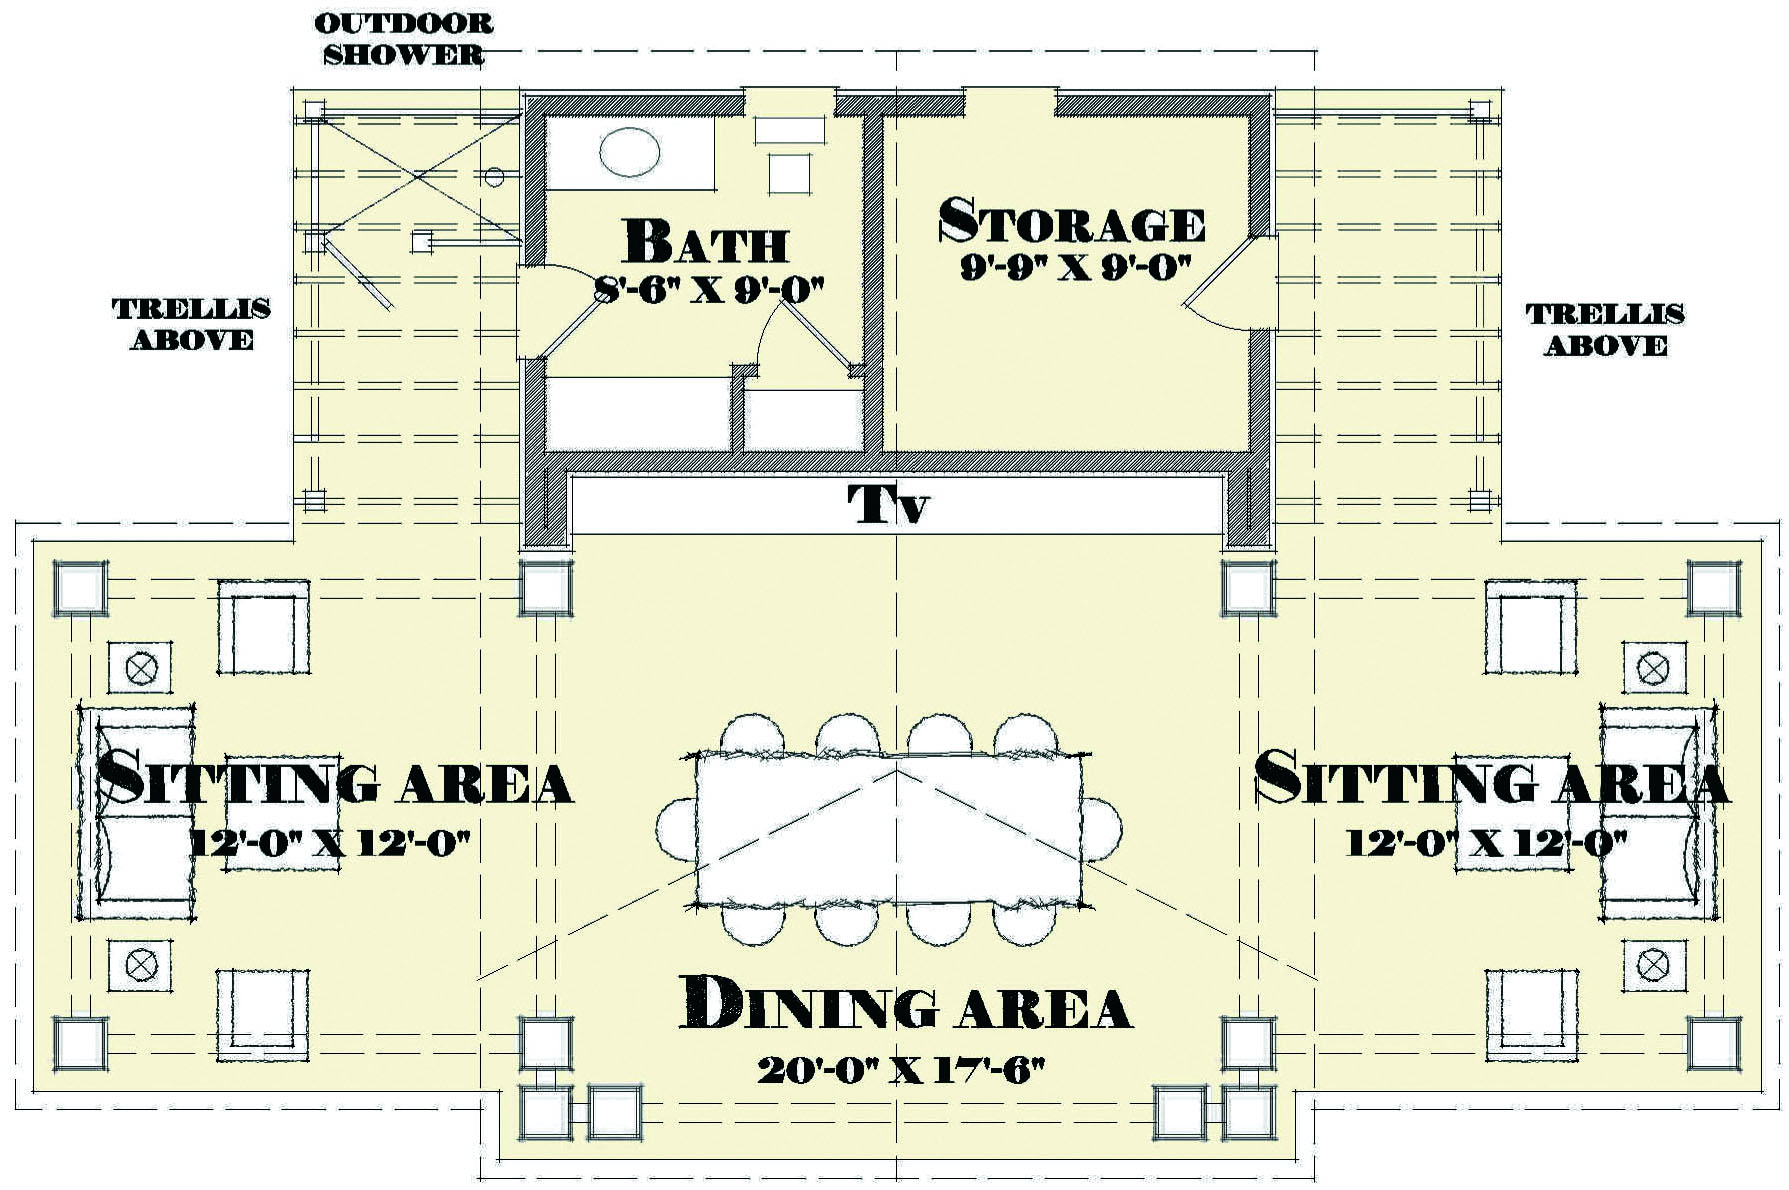 House Review Pool Houses Cabanas – Pool House Floor Plans With Bathroom